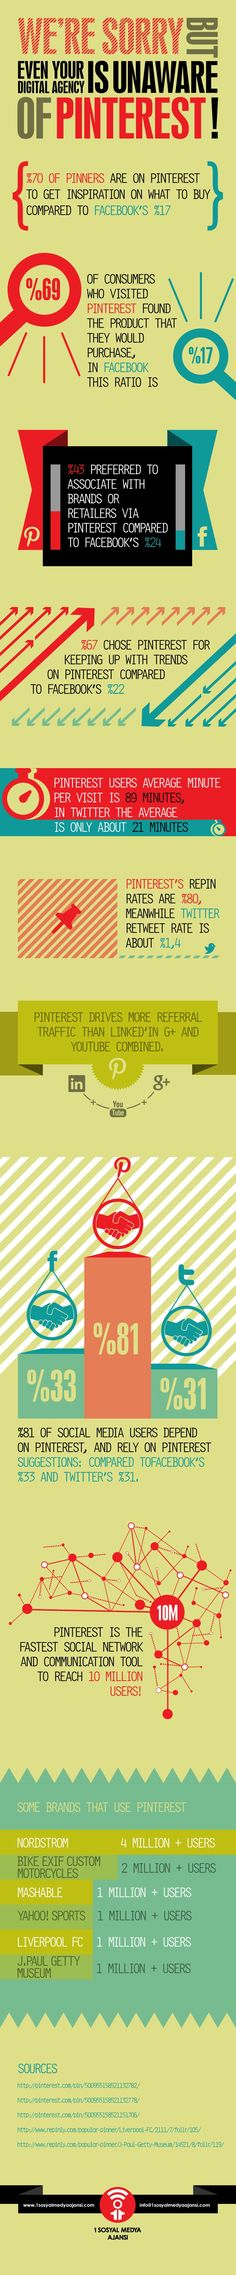 Pinterest is a great way reach out to customers - #infographic..